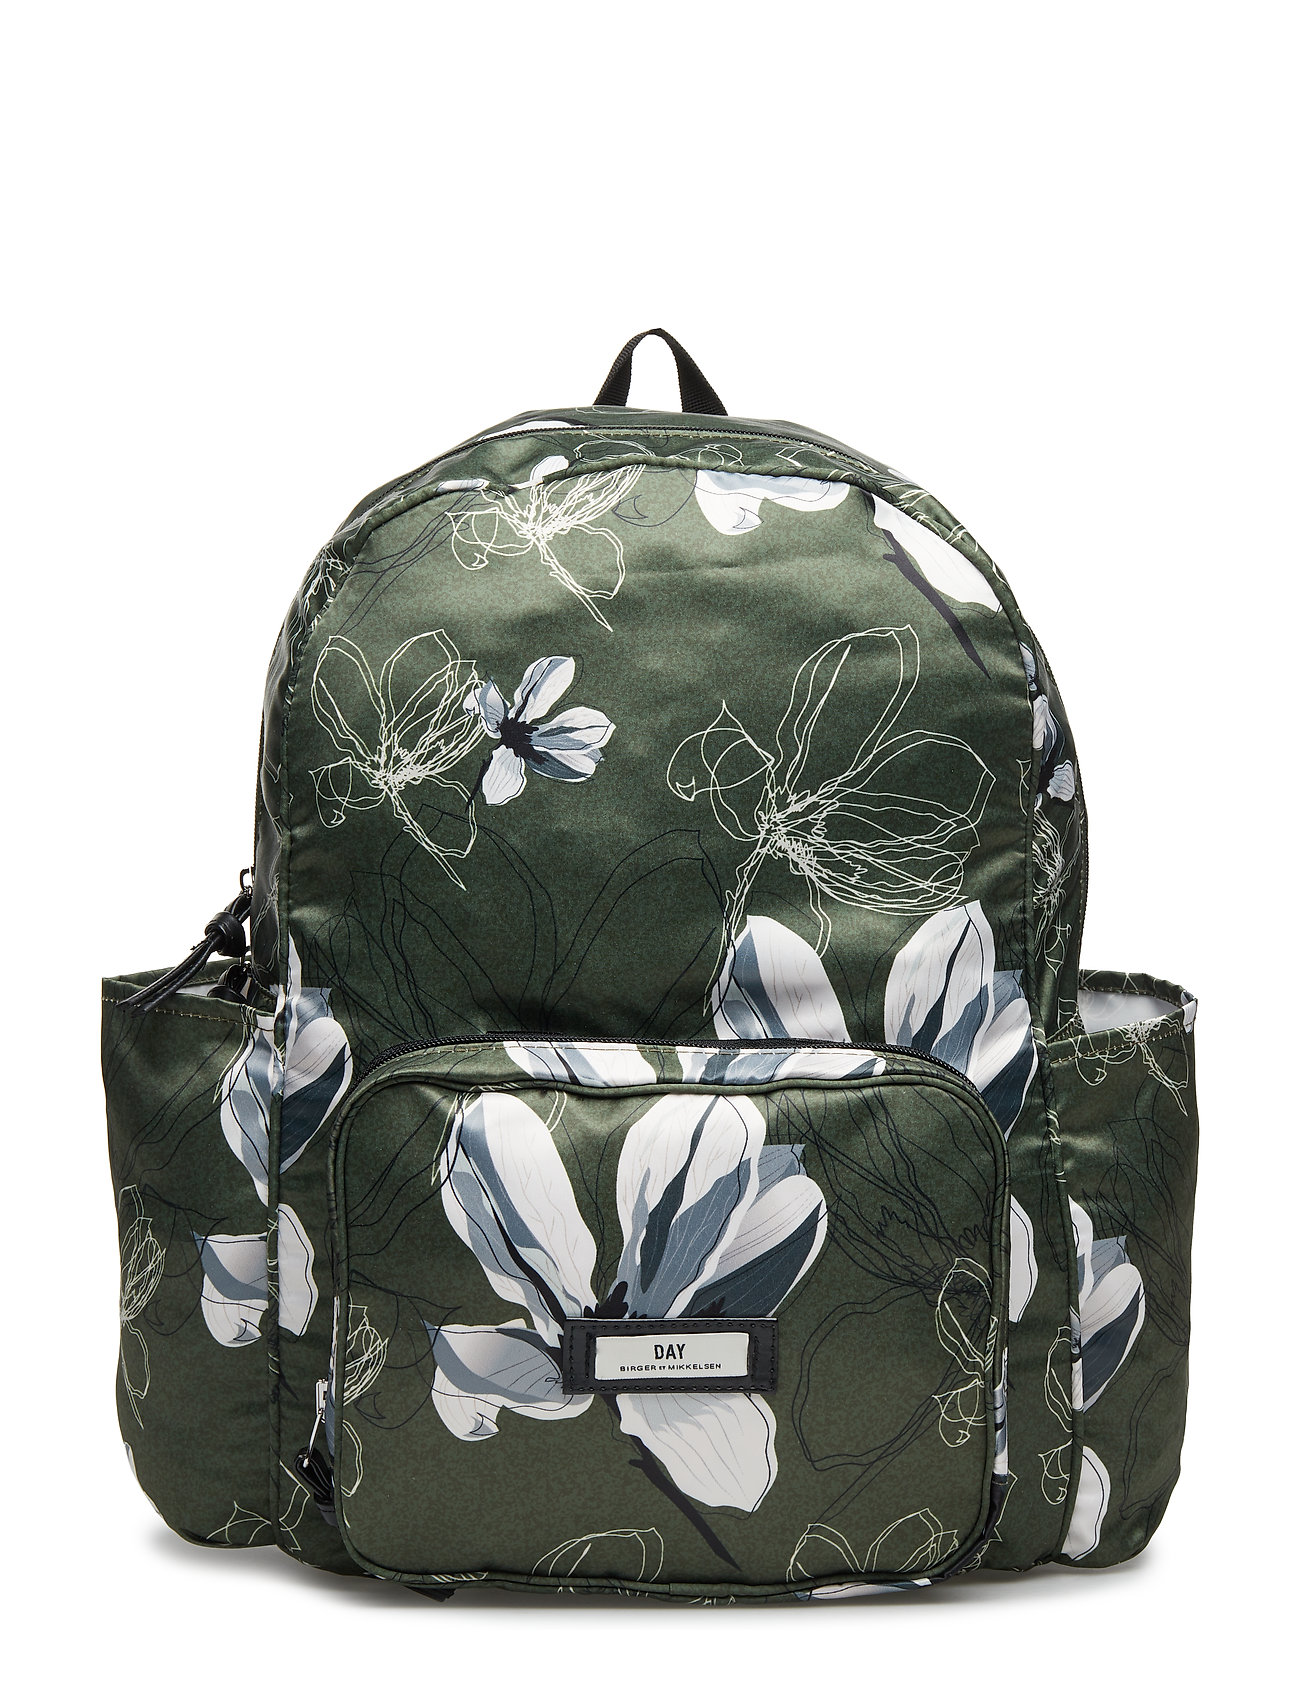 Image of 100% Polyester Bags Backpacks Use This Grøn DAY ET (3106982145)